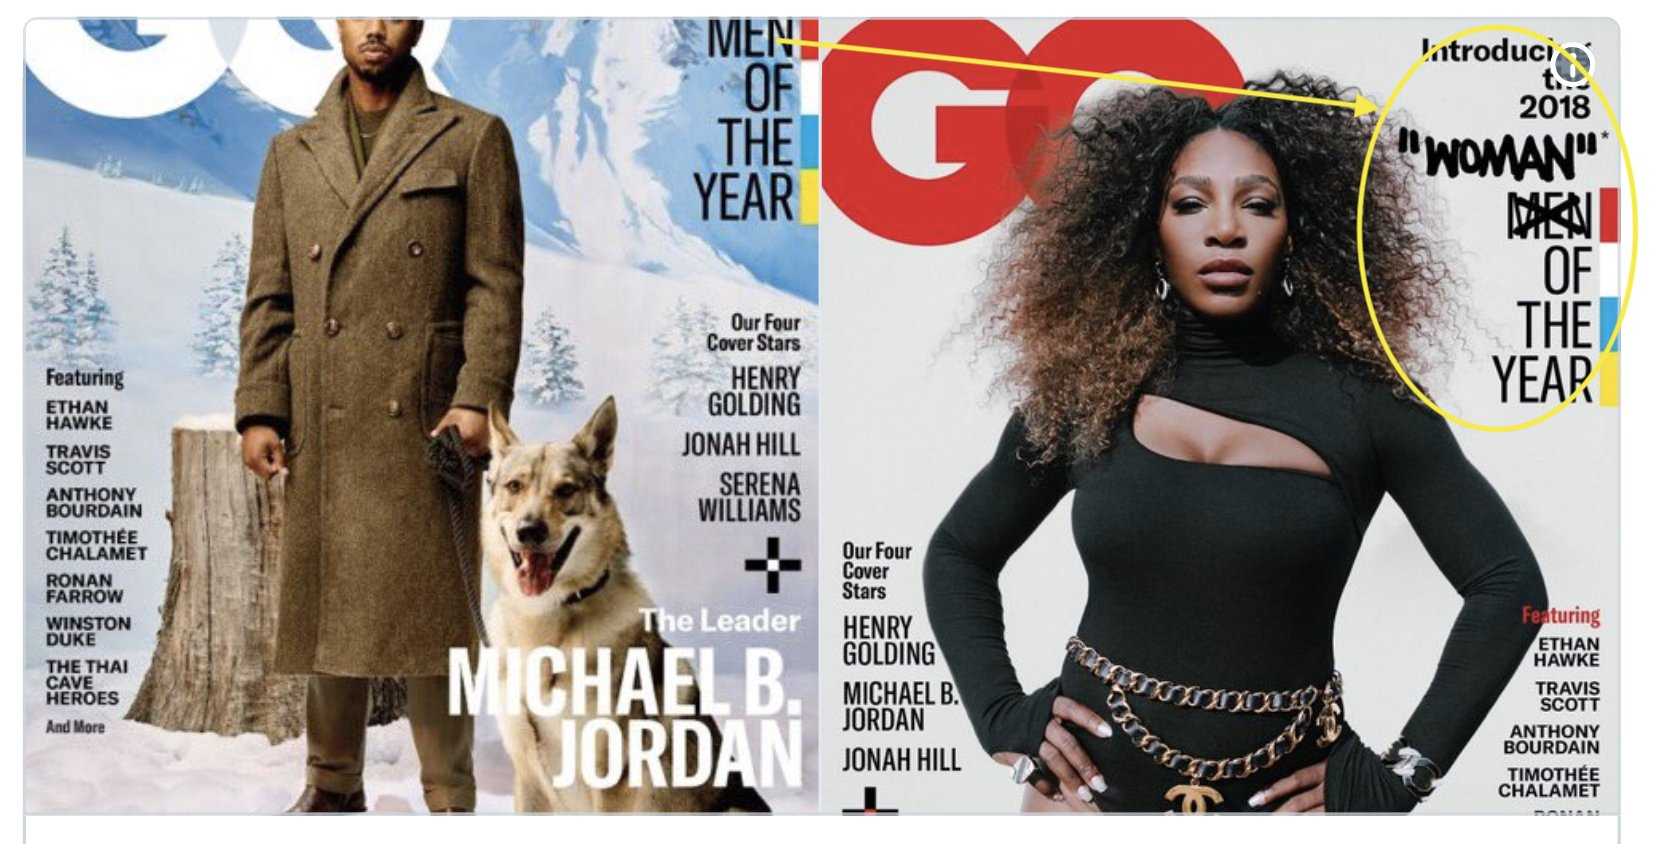 Serena Williams GQ cover sparks outcry